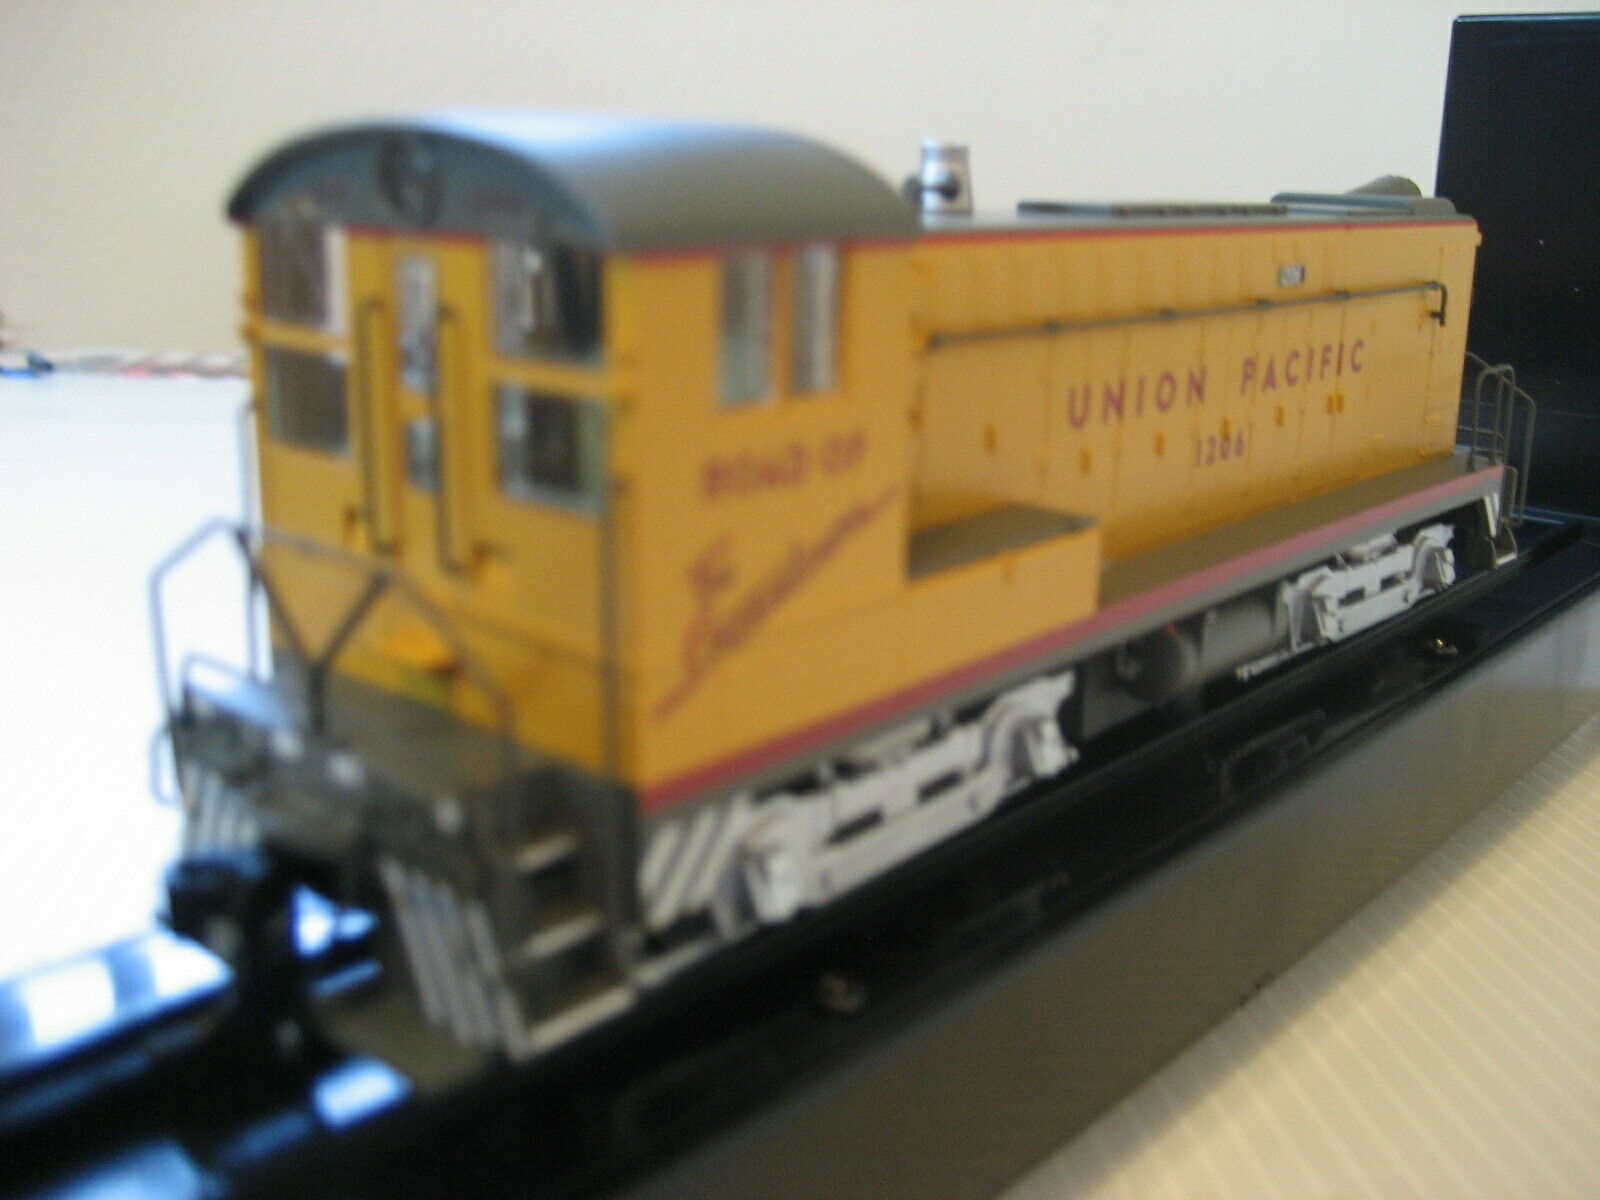 Nuova Release Bowser HO DS 441000 Union Pacific Switcher DCDCC READY